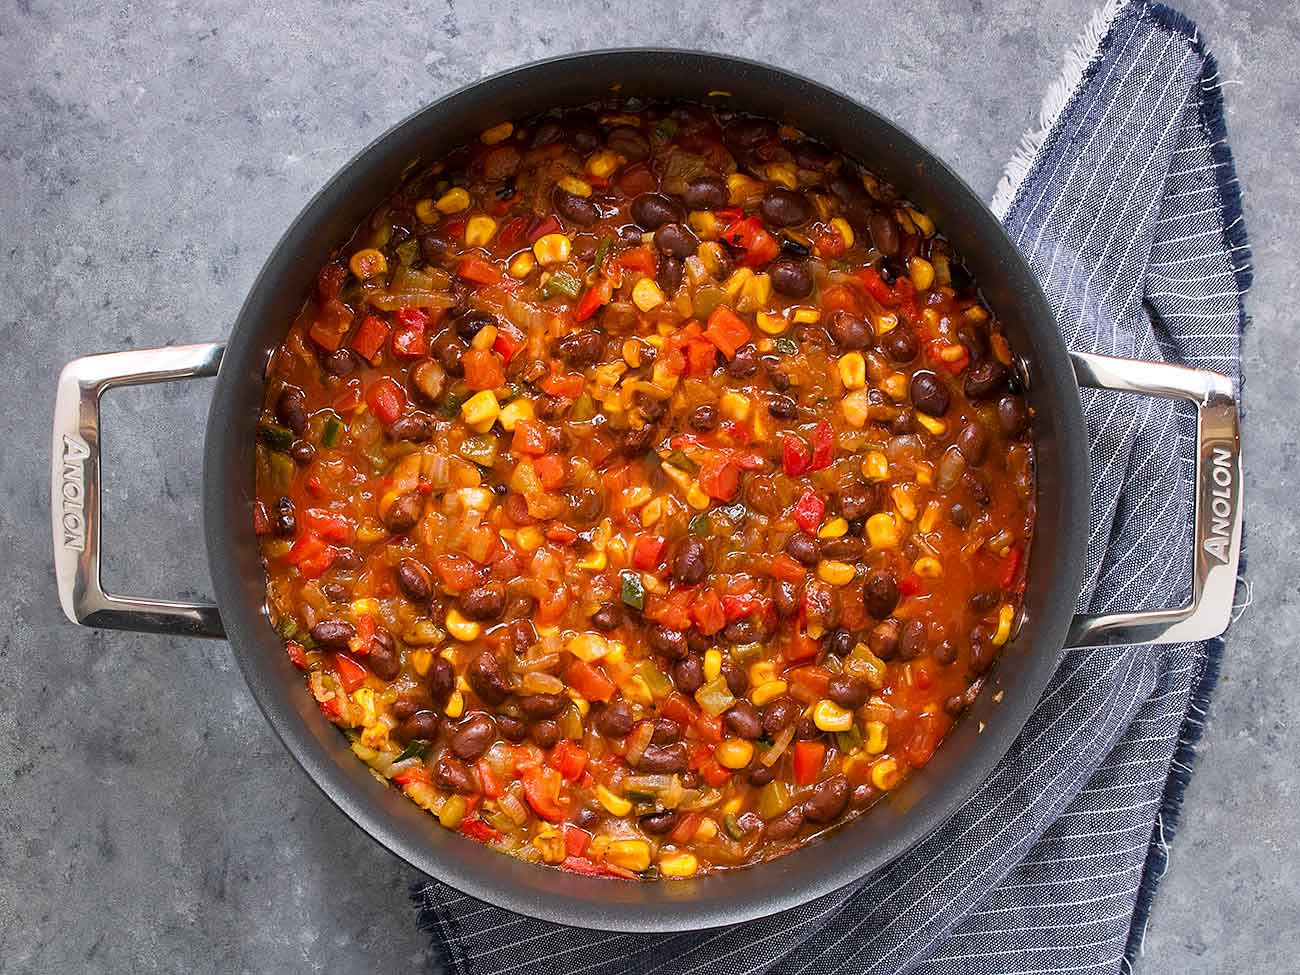 Mexican chili cooking in a pot.